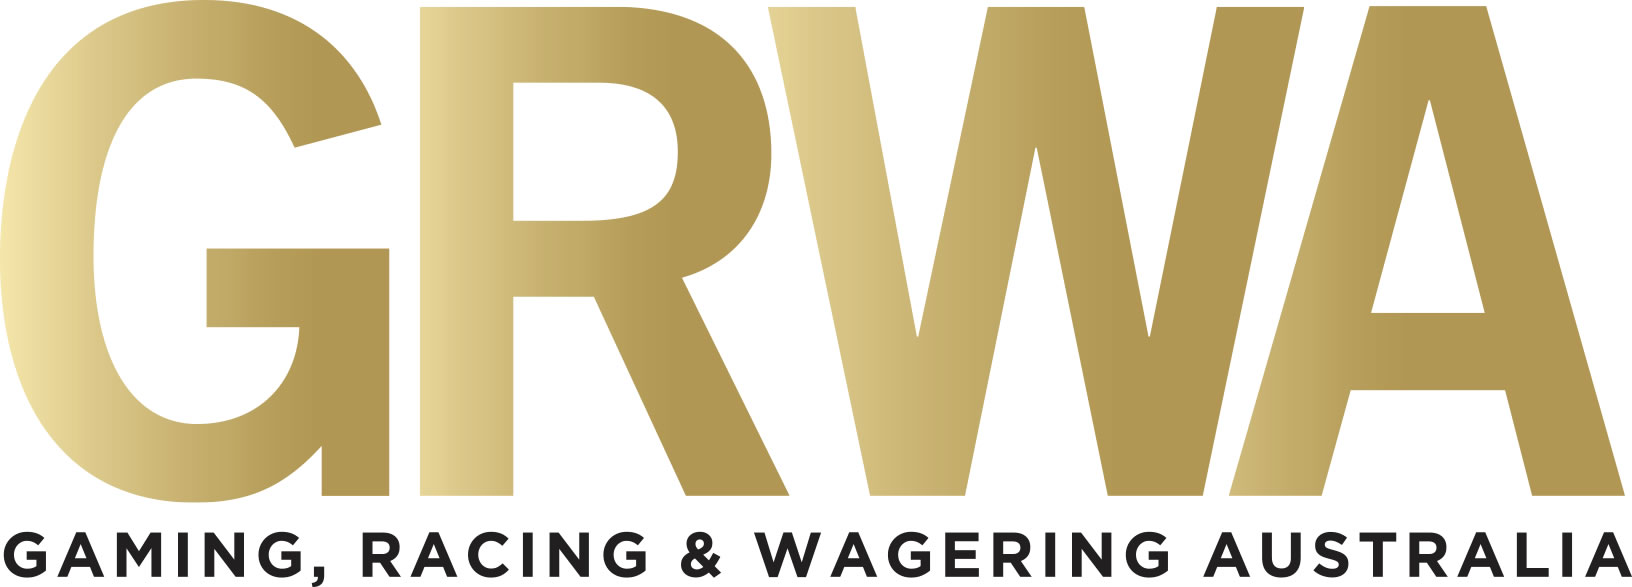 Gaming, Racing & Wagering Australia 2018